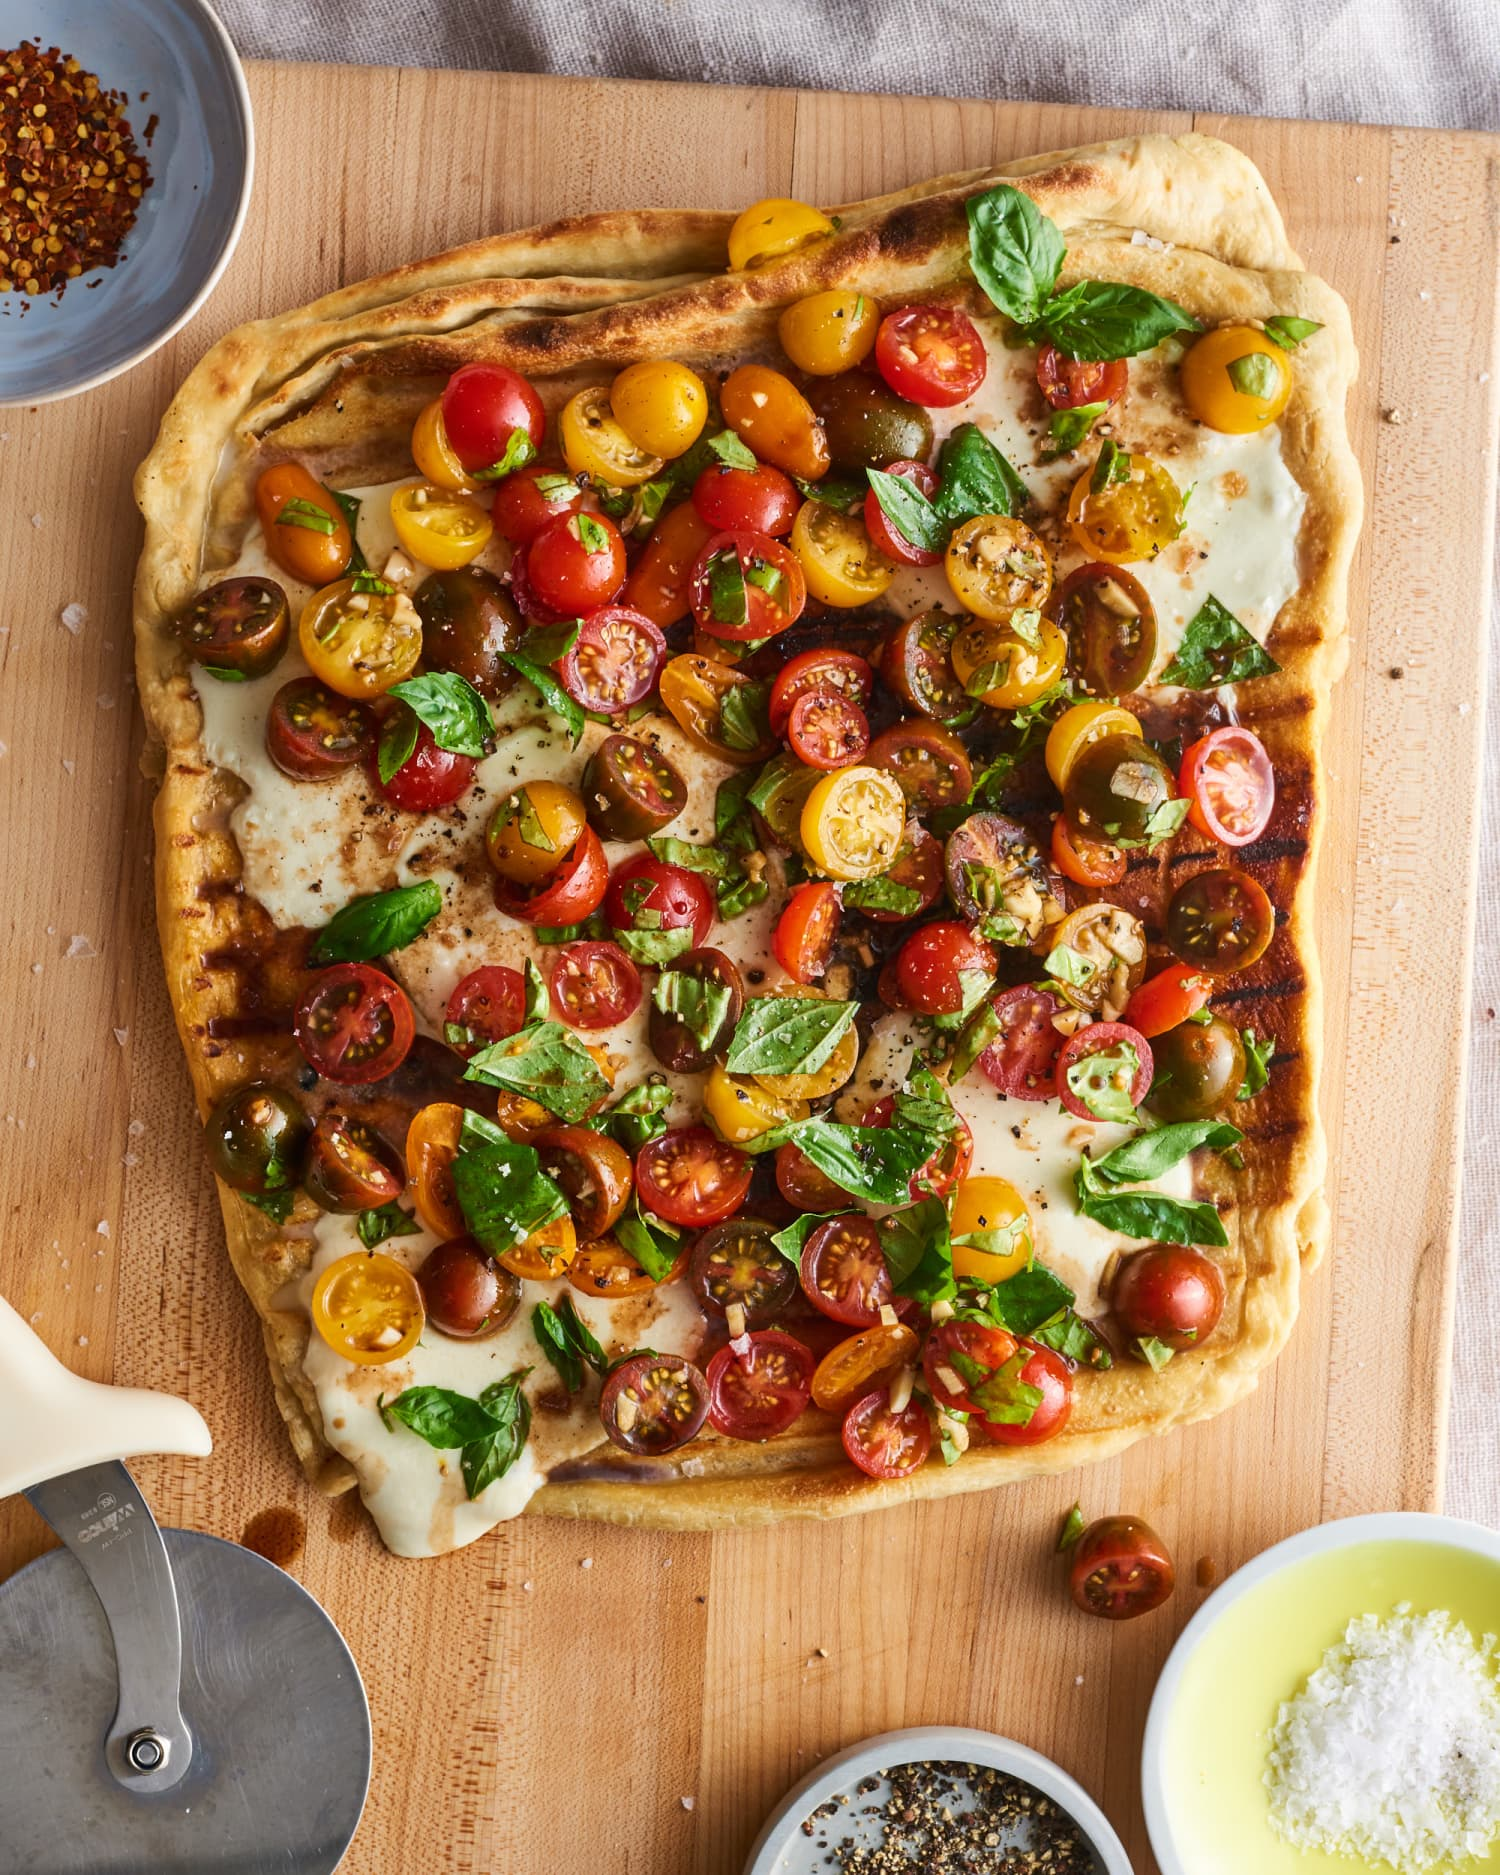 This Garlicky Bruschetta Pizza Is the Best Way to Enjoy Sweet Summer Tomatoes